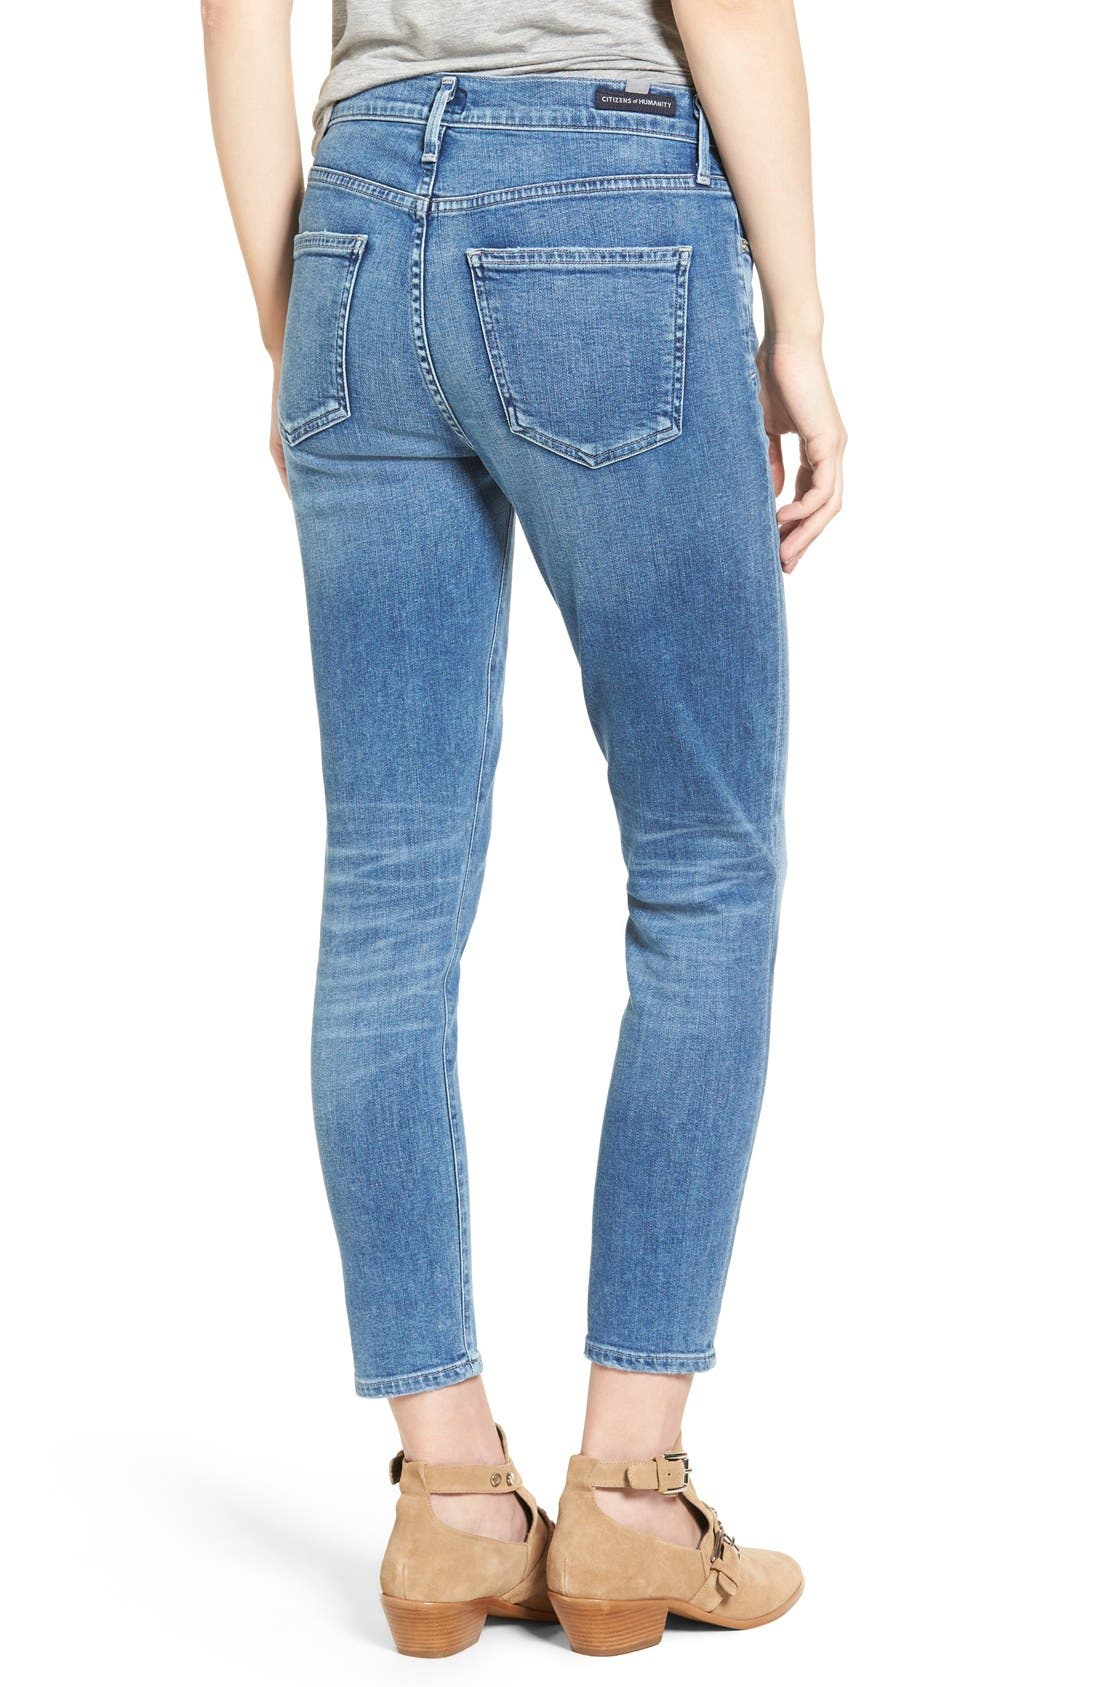 Rocket High Waist Crop Skinny Jeans,                             Alternate thumbnail 3, color,